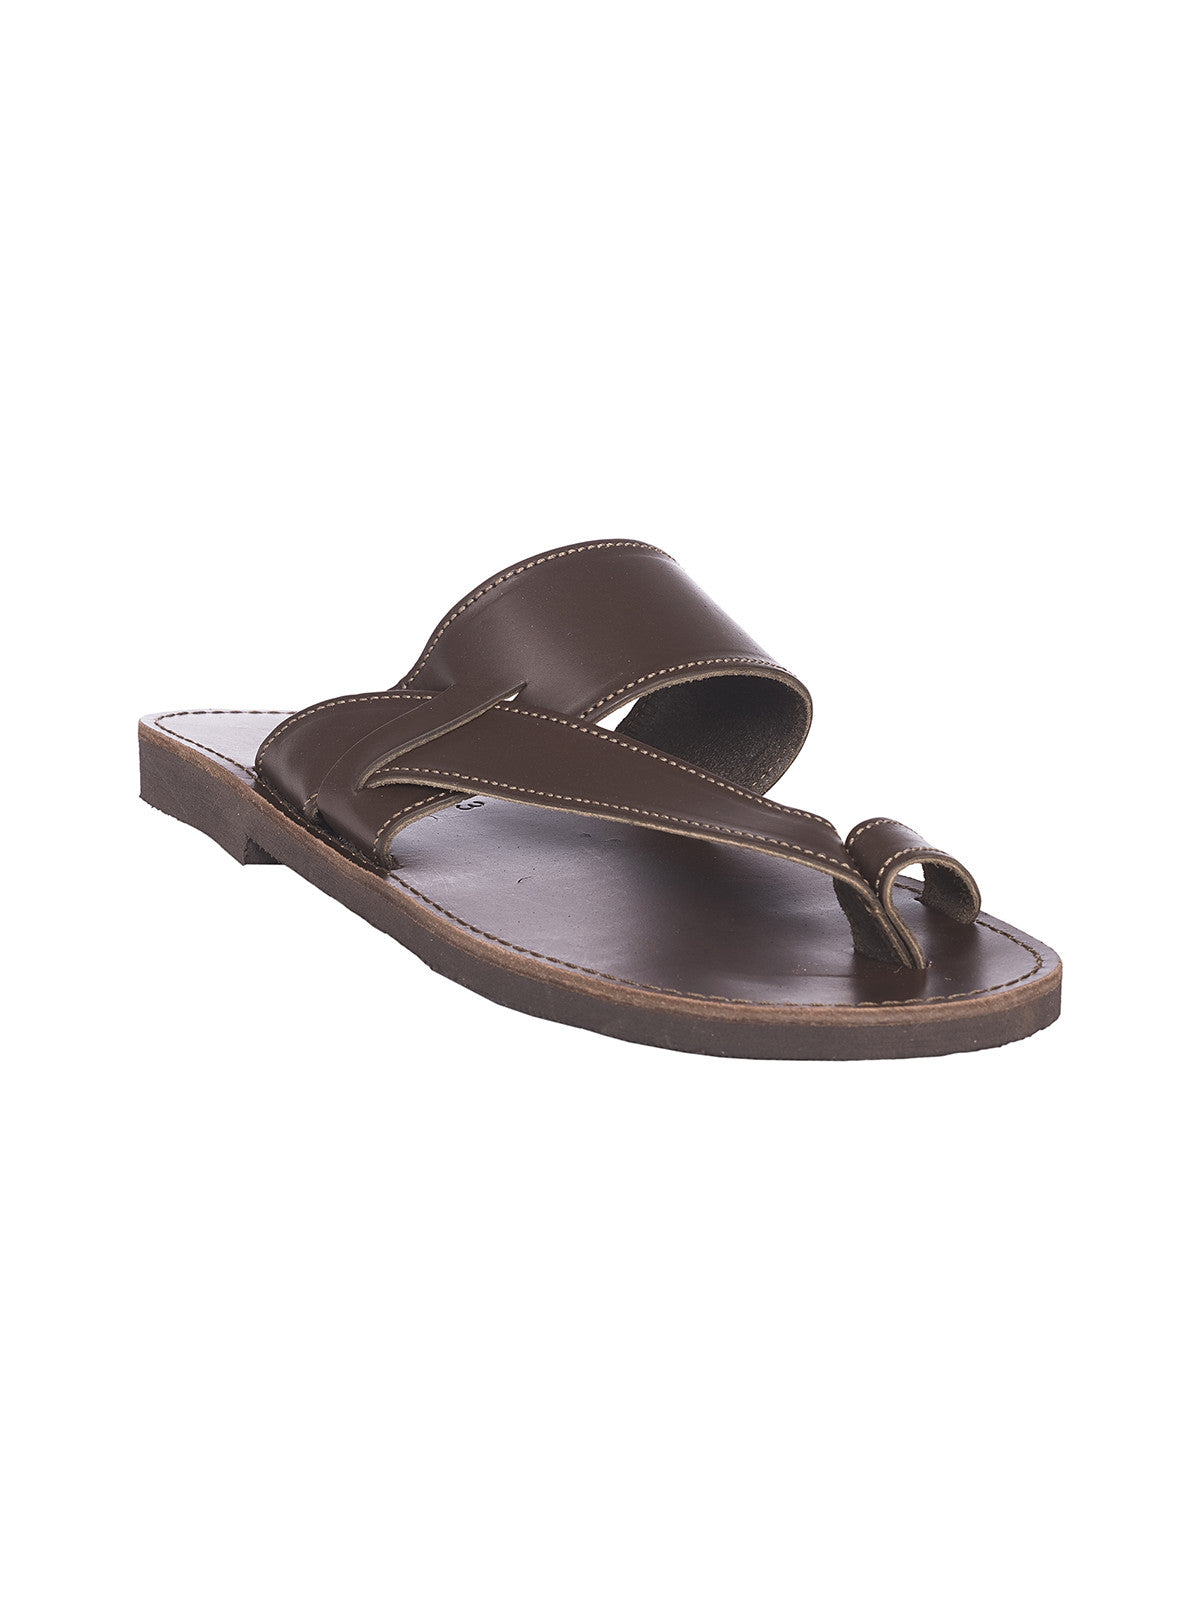 Vasilios Greek Leather Sandals